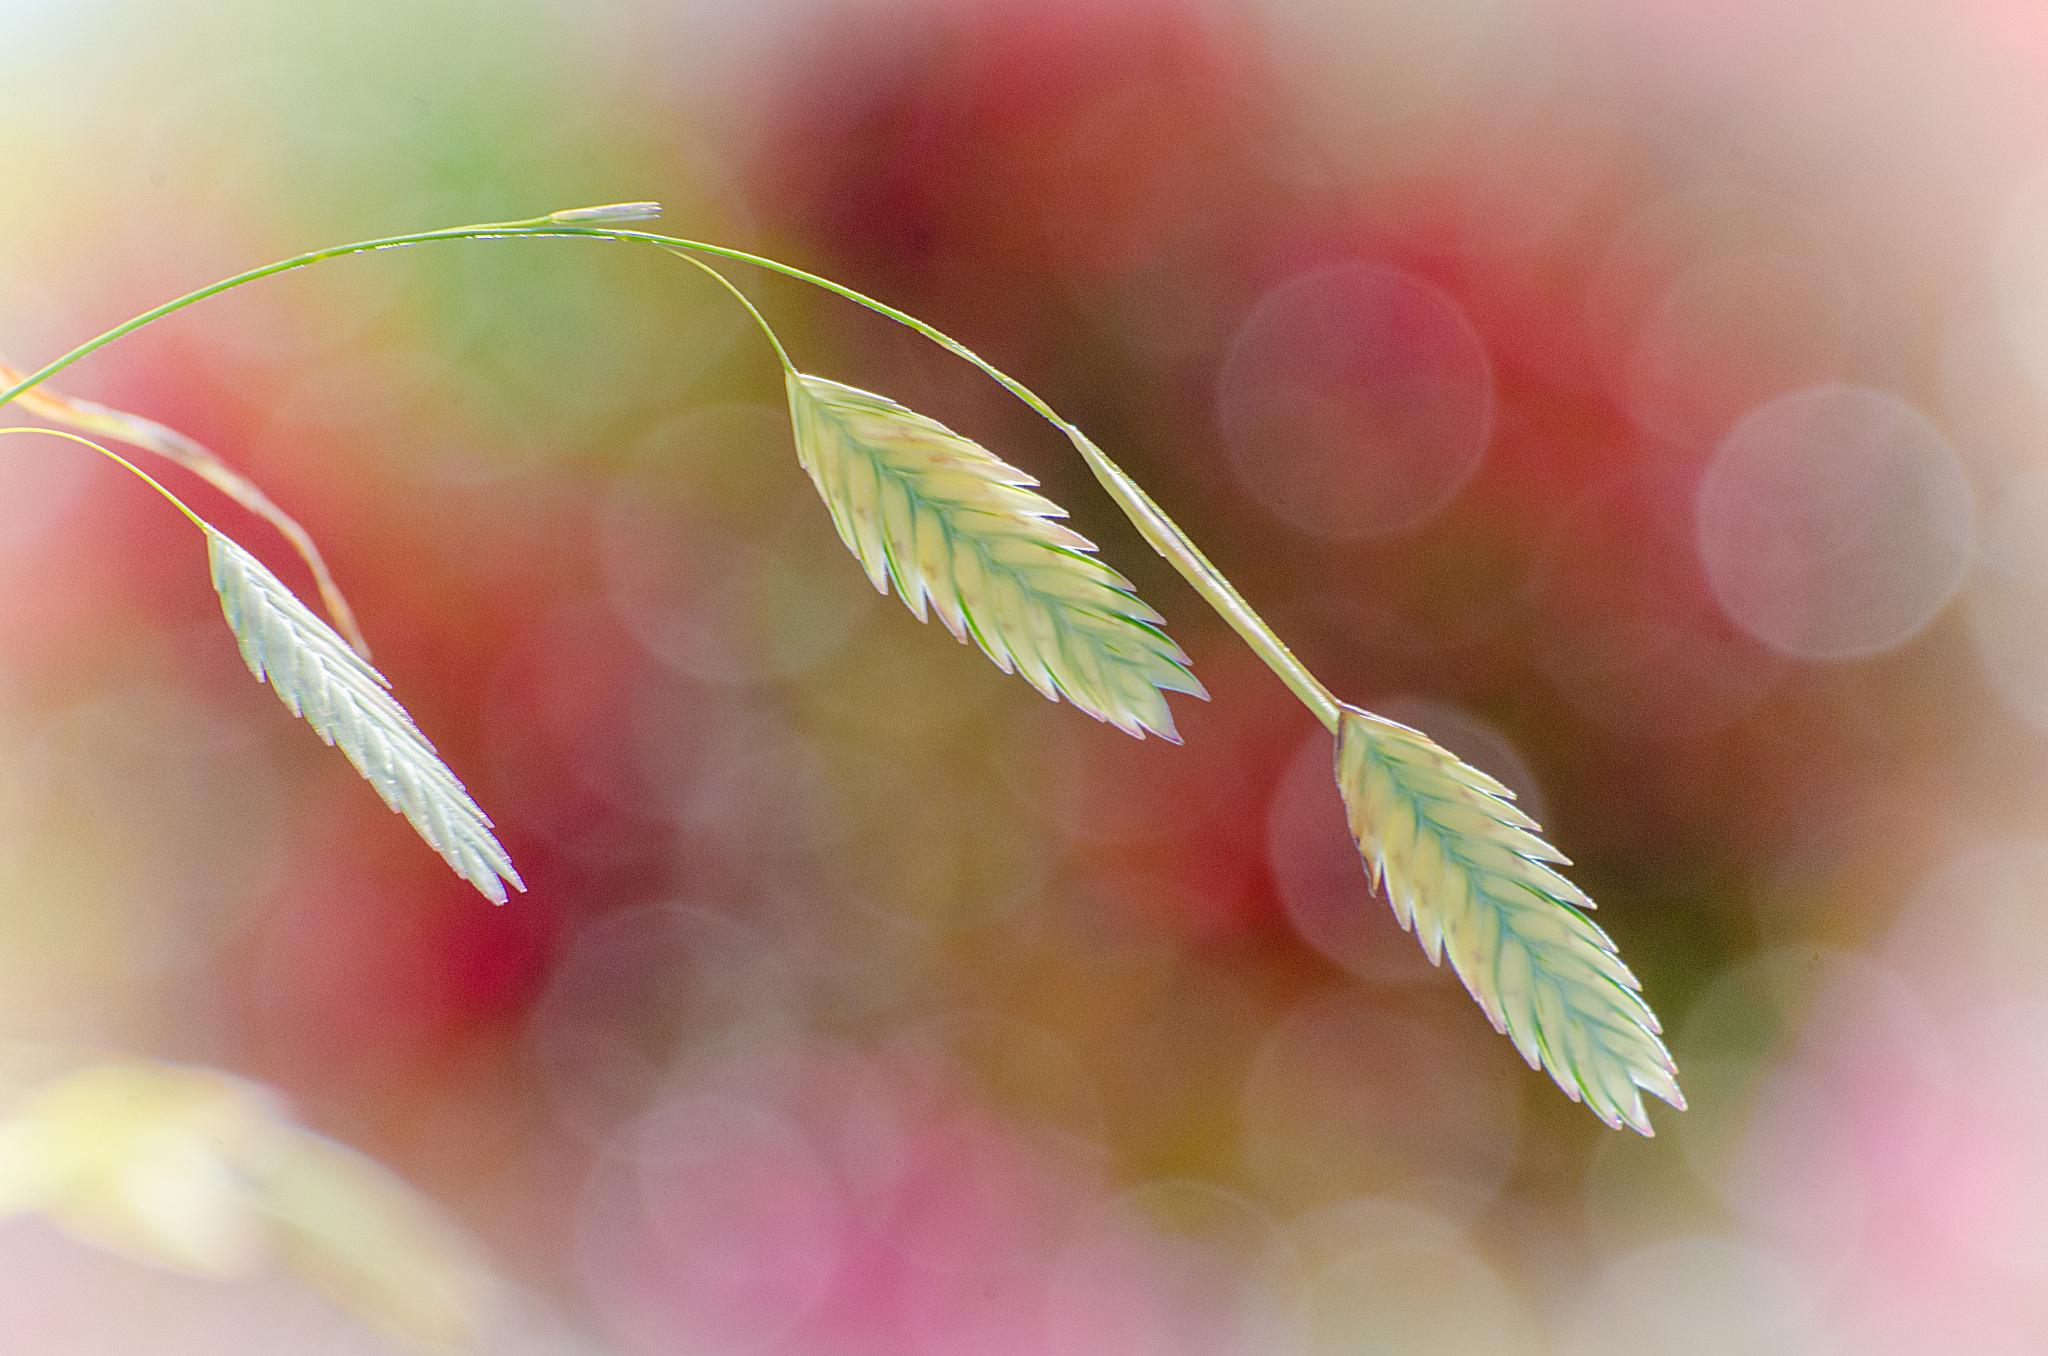 Late Summer Grasses II by JohnEllingson